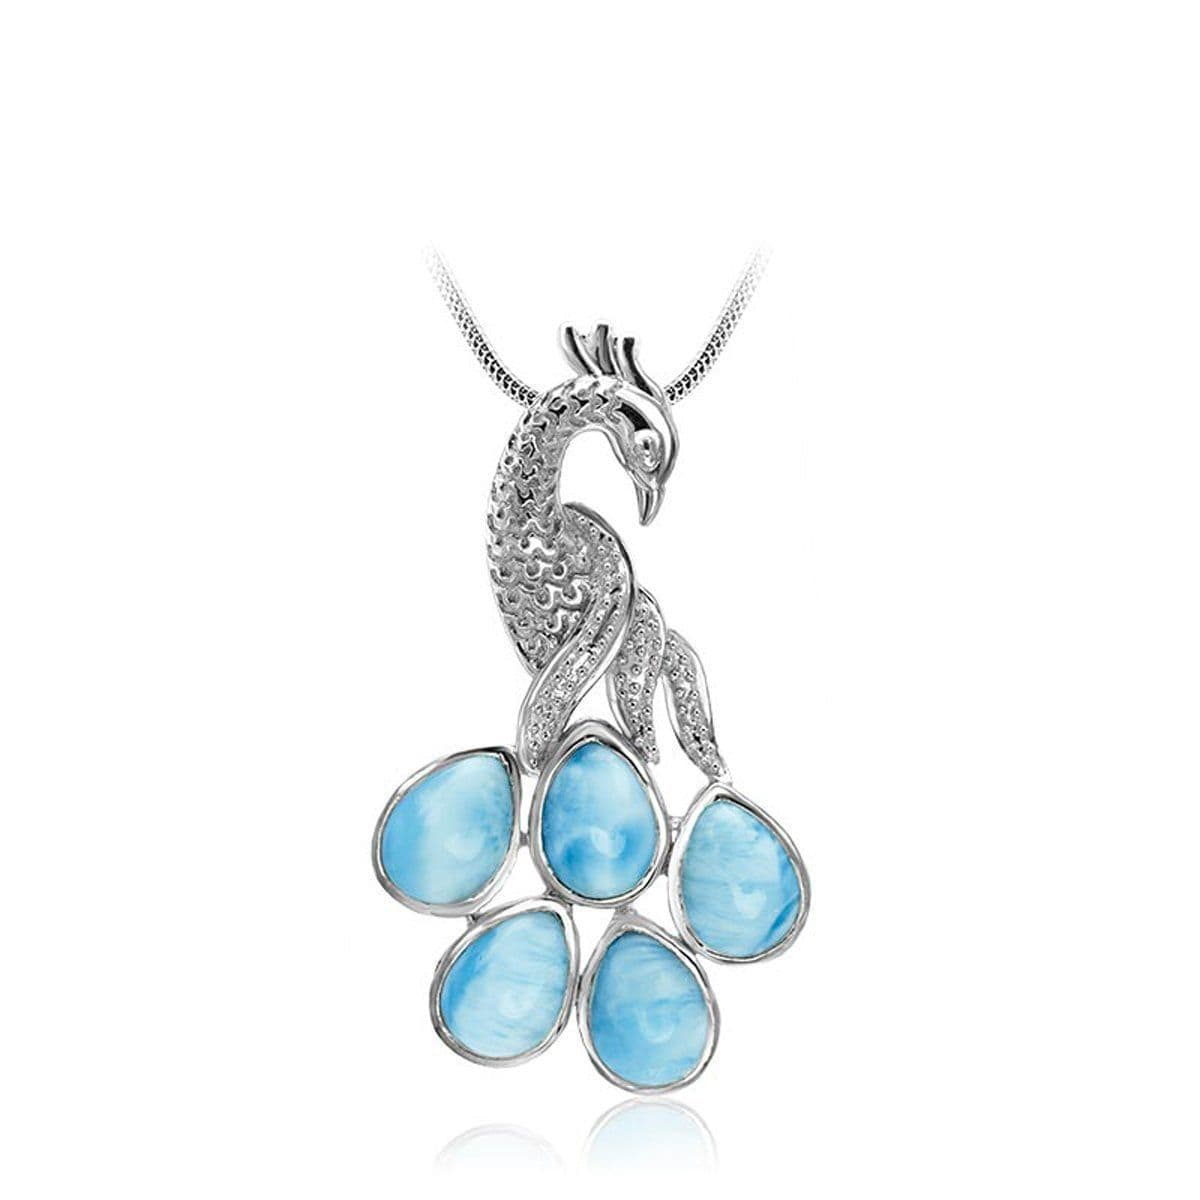 Peacock Necklace - Npeac00-00-Marahlago Larimar-Renee Taylor Gallery